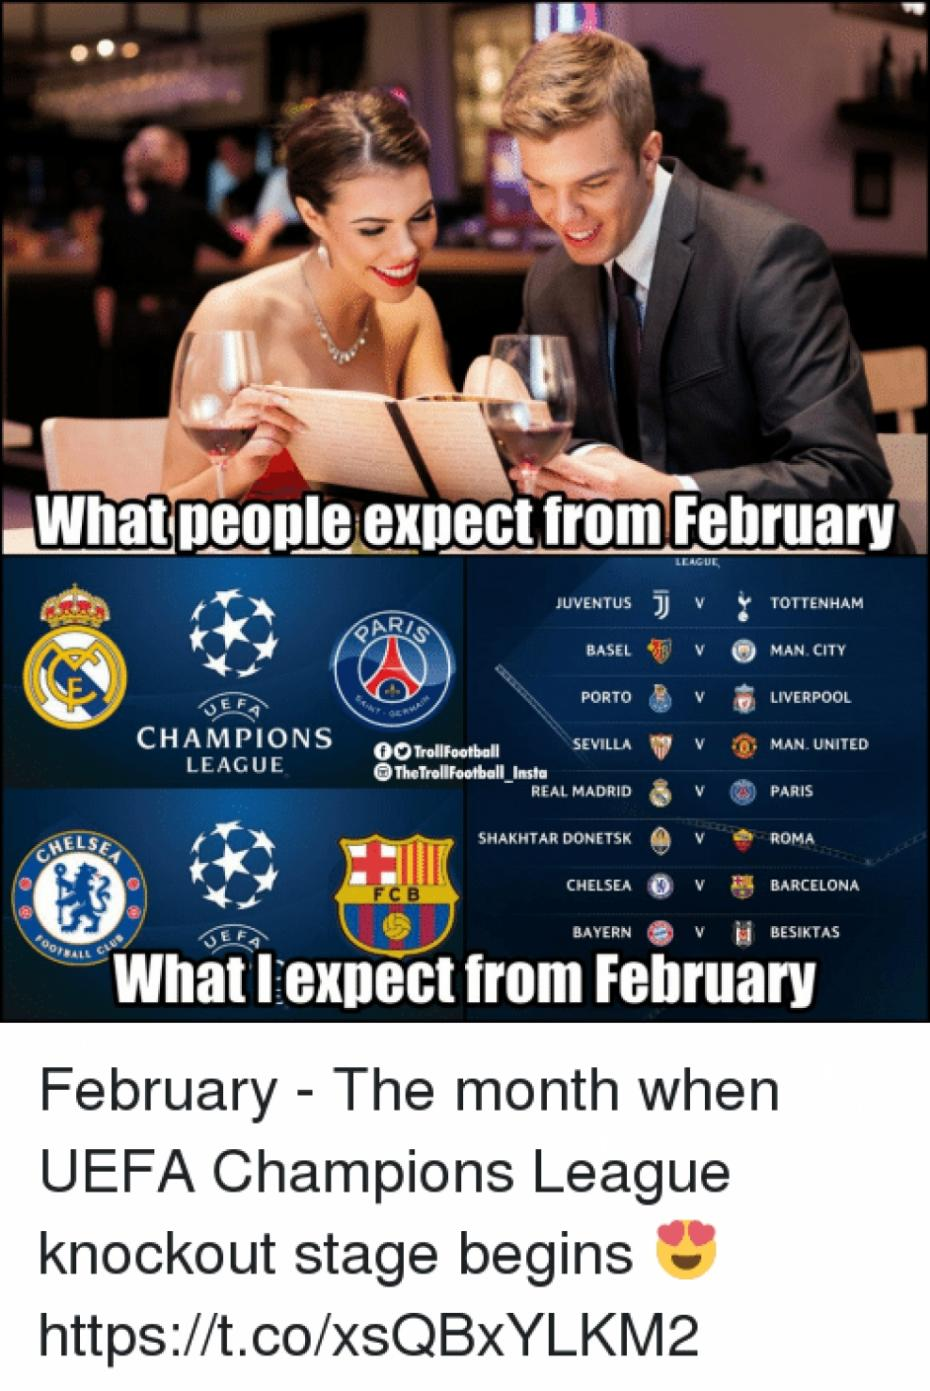 what-people-expect-from-february-league-juventus-tottenham-basel-v-30684179_942x1409